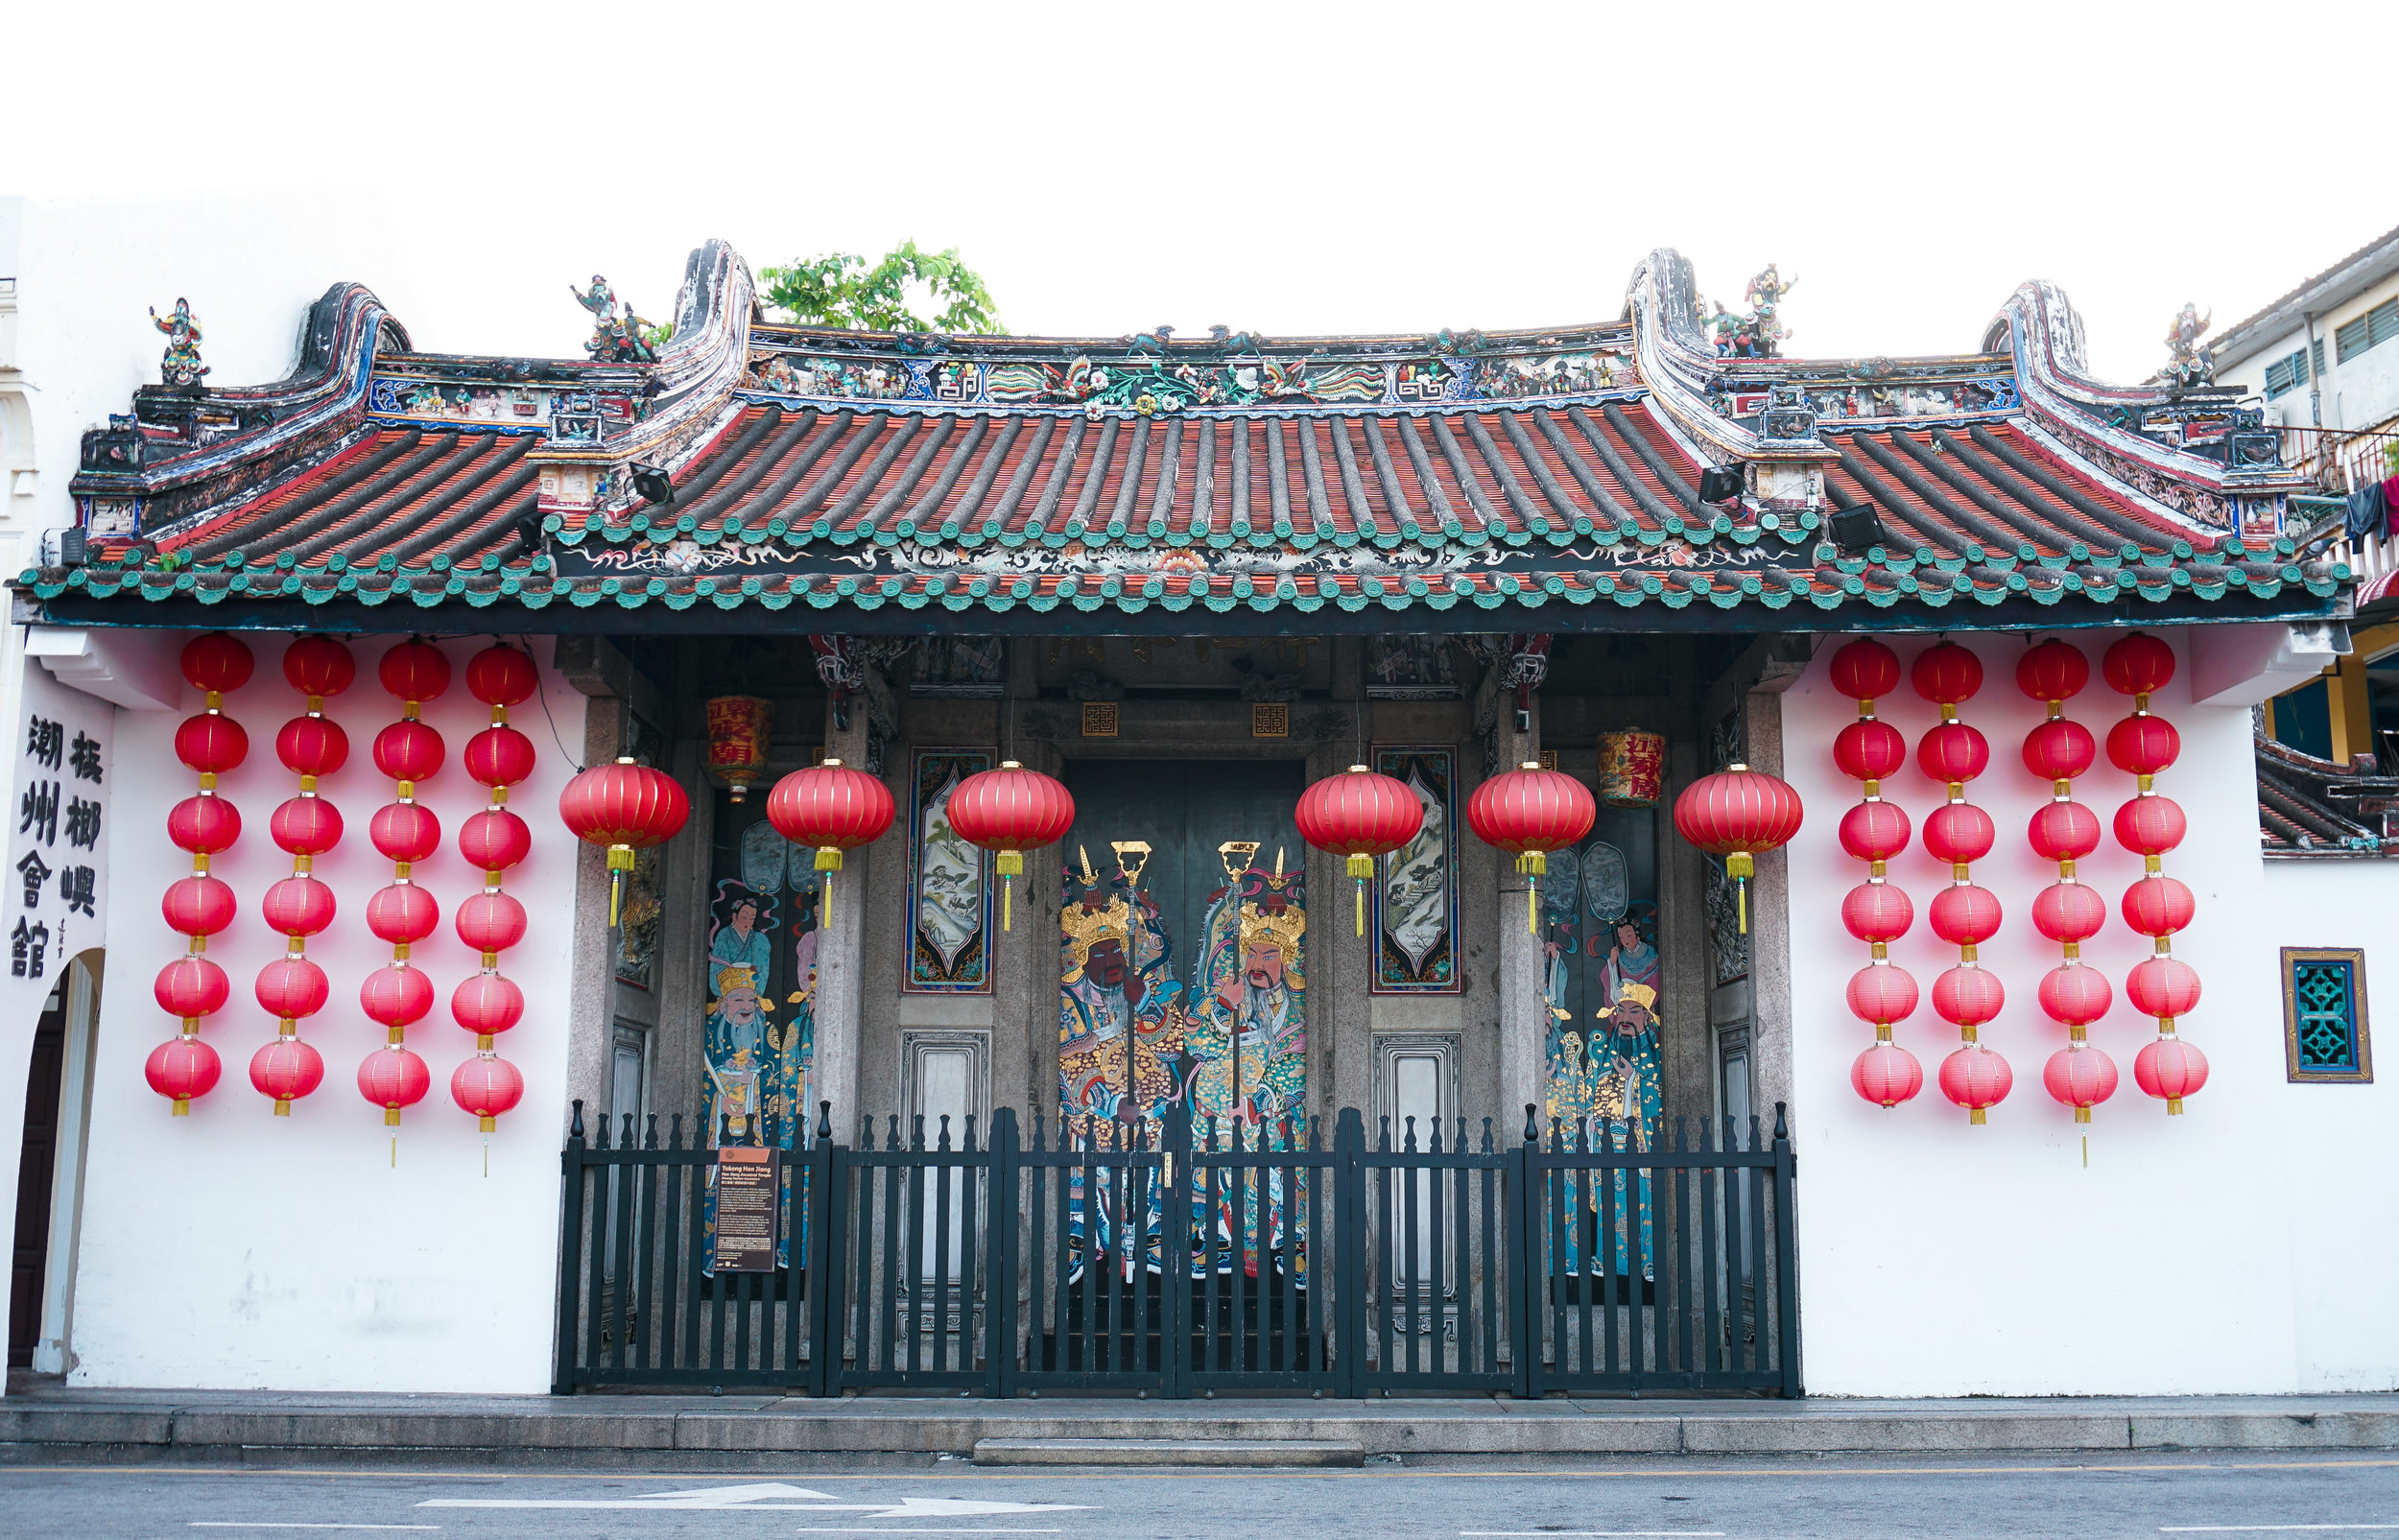 curio.trips.malaysia.penang.red.lantern.temple.landscape.jpg